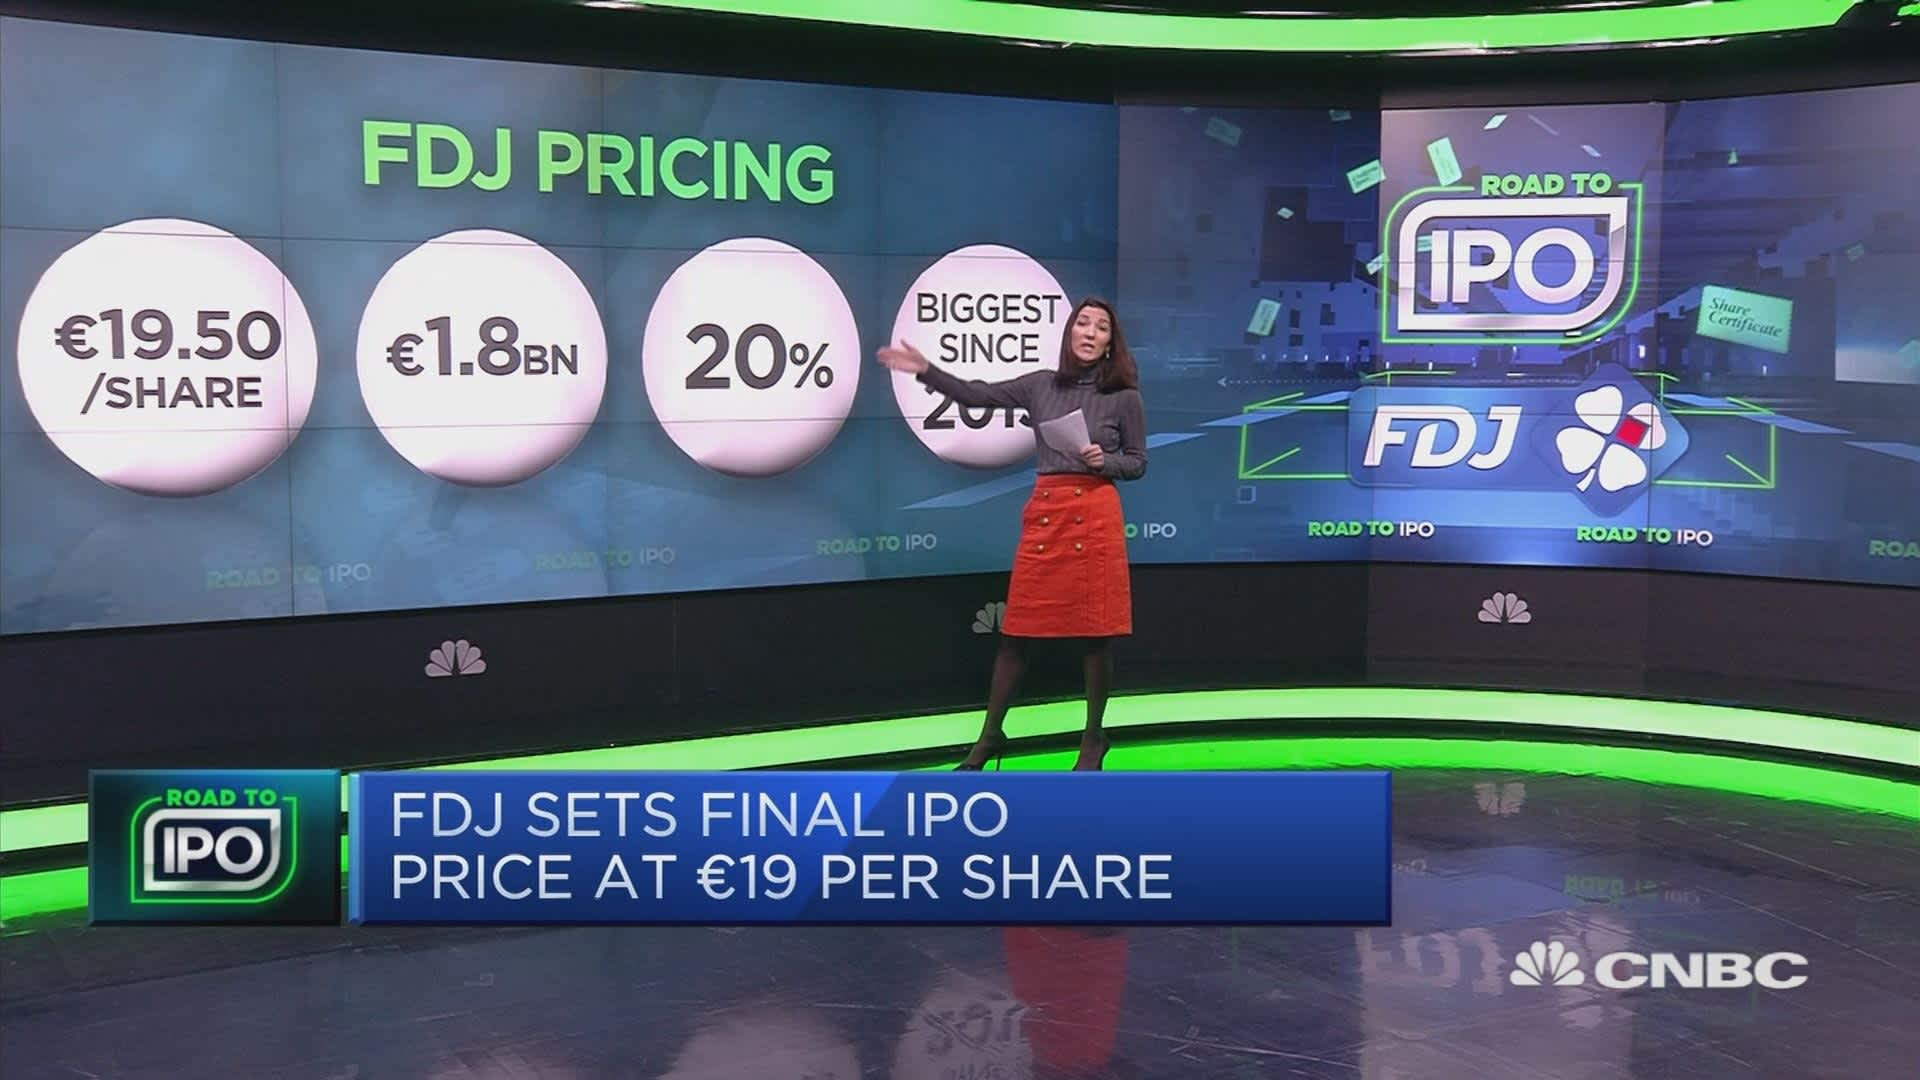 France's FDJ sets final IPO price at 19 euros per share